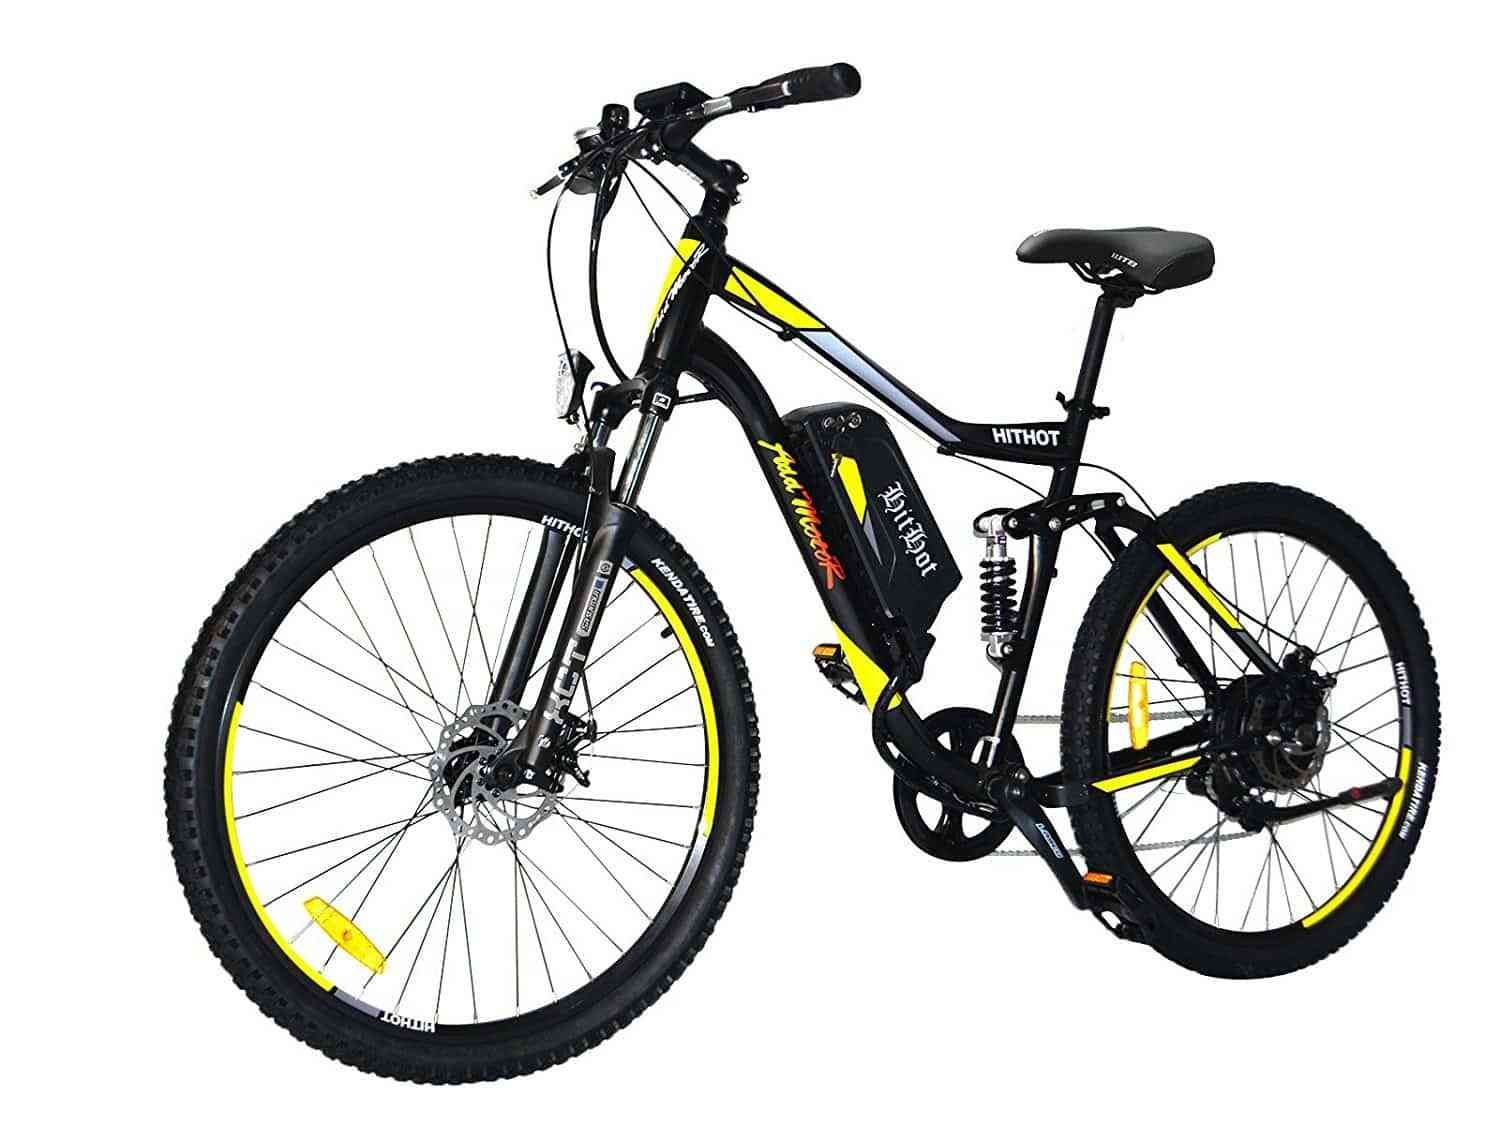 Top 10 Best Electric Mountain Bikes In 2020